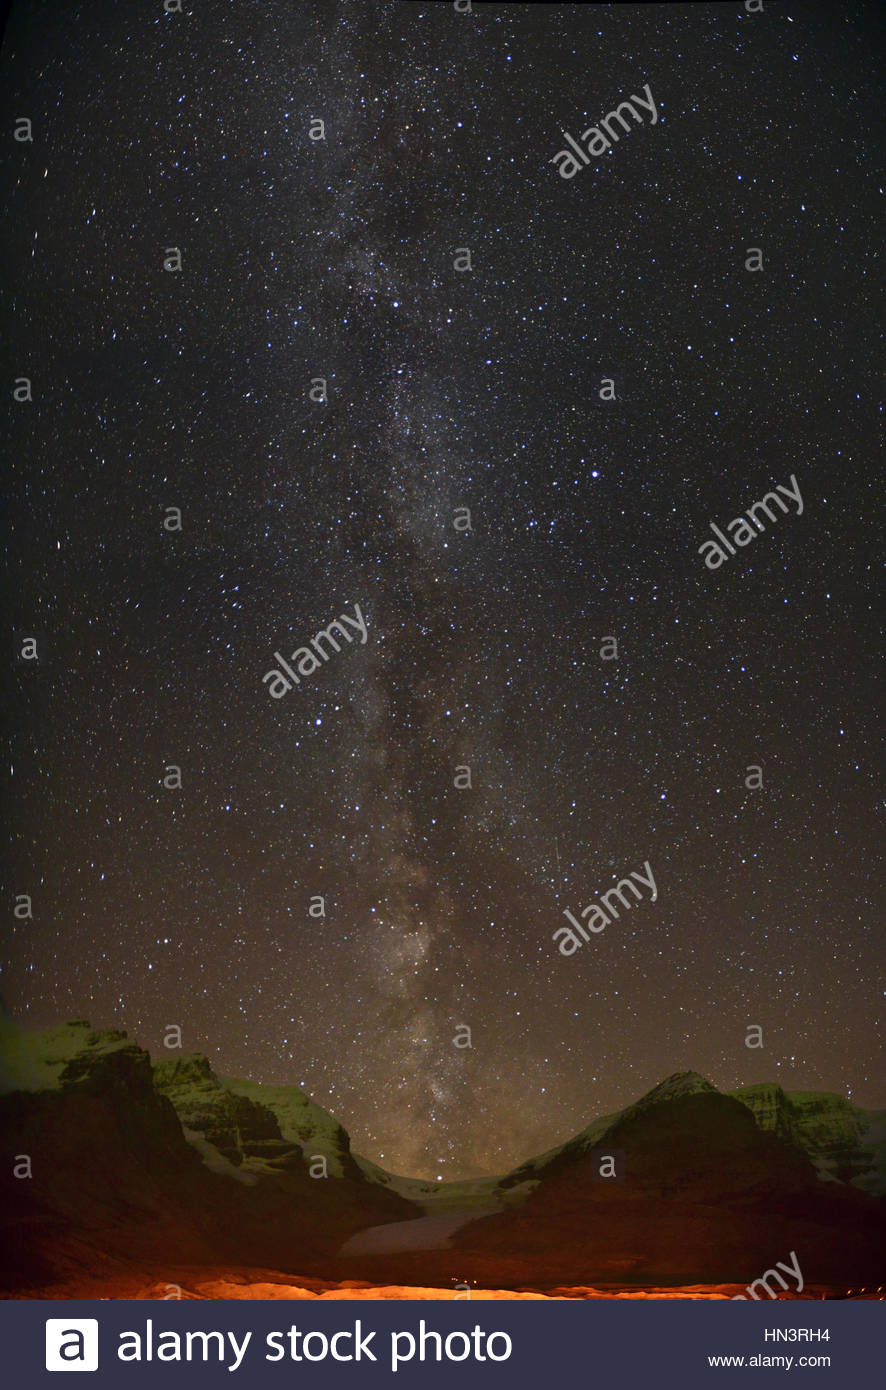 Milky Way over Athabasca Glacier In Columbia Icefield. - Stock Image